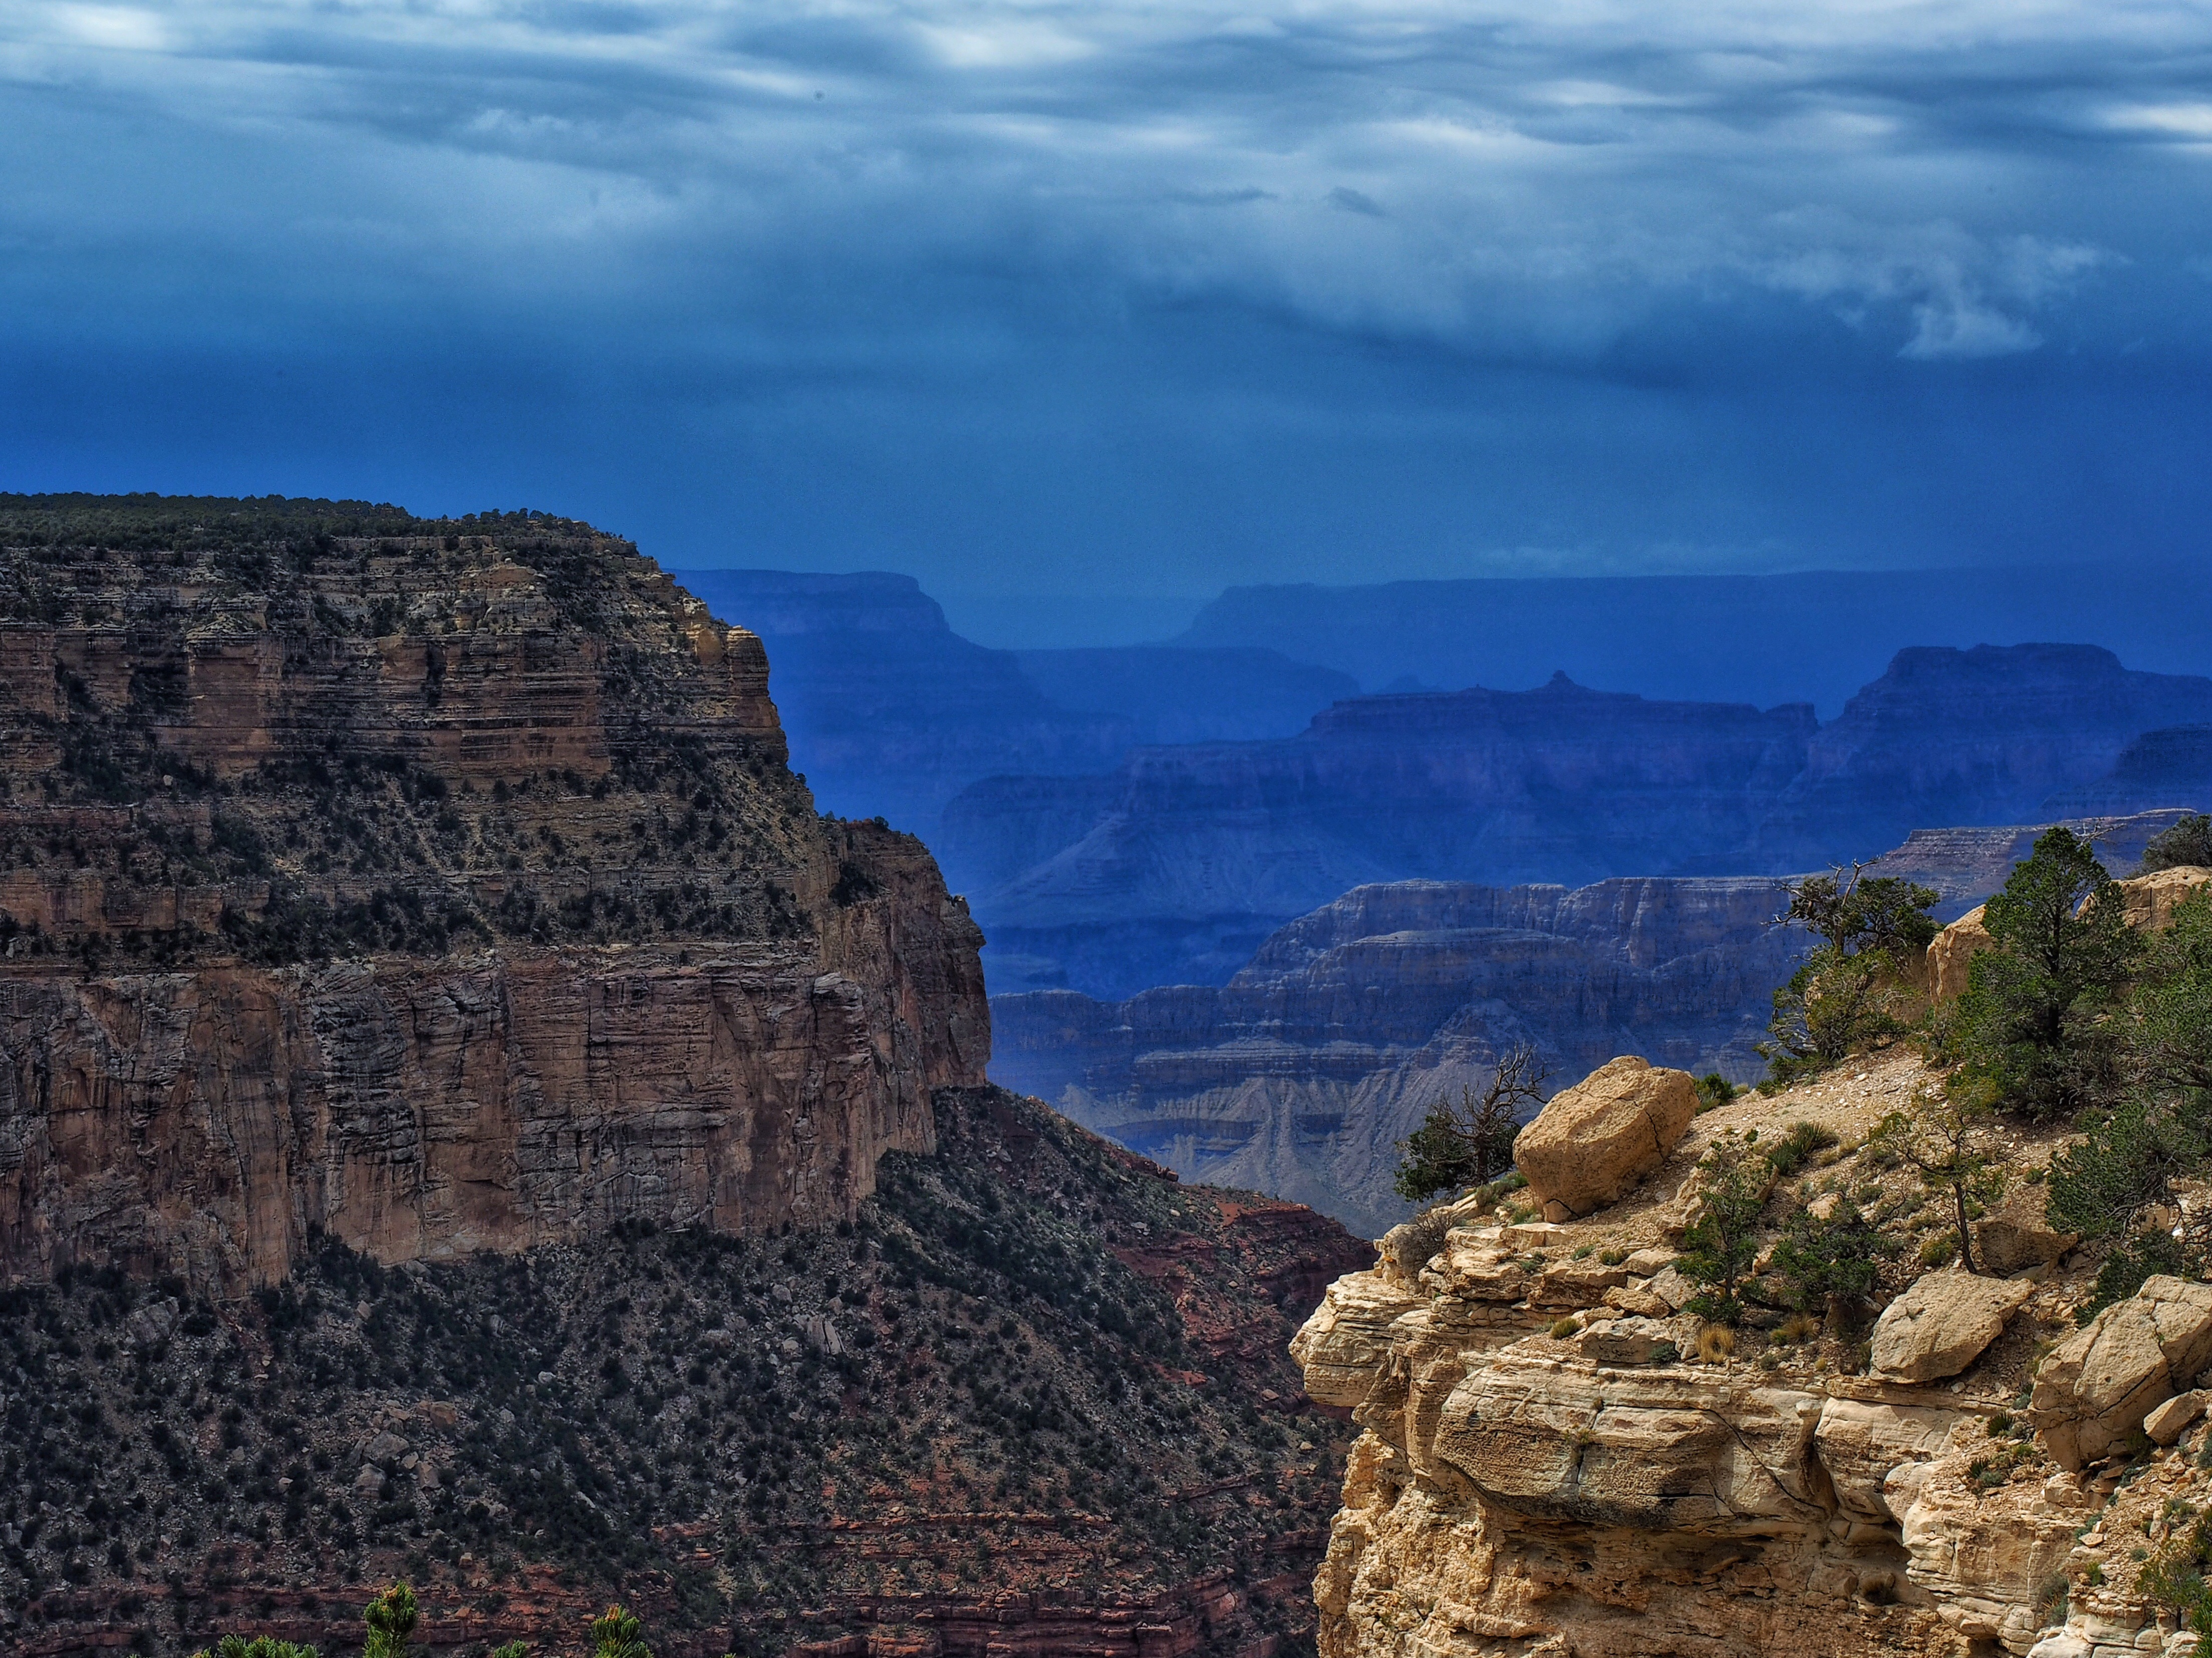 A storm passes through the Grand Canyon